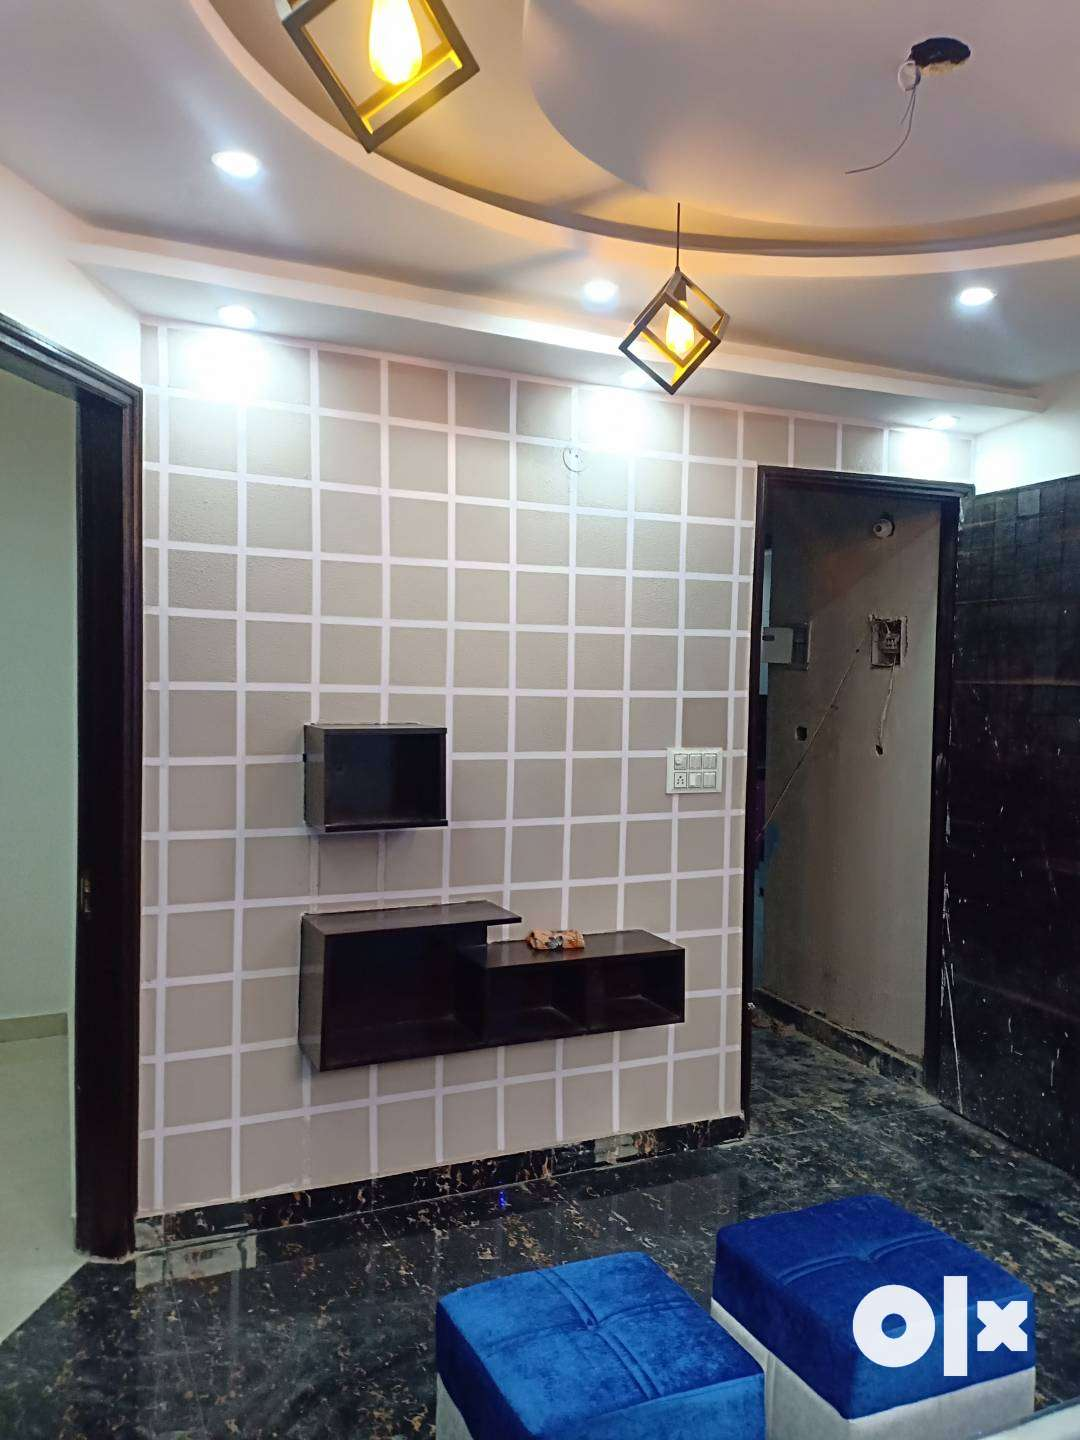 3BHK L-type fully furnished flat at 28.5 lacs with car parking